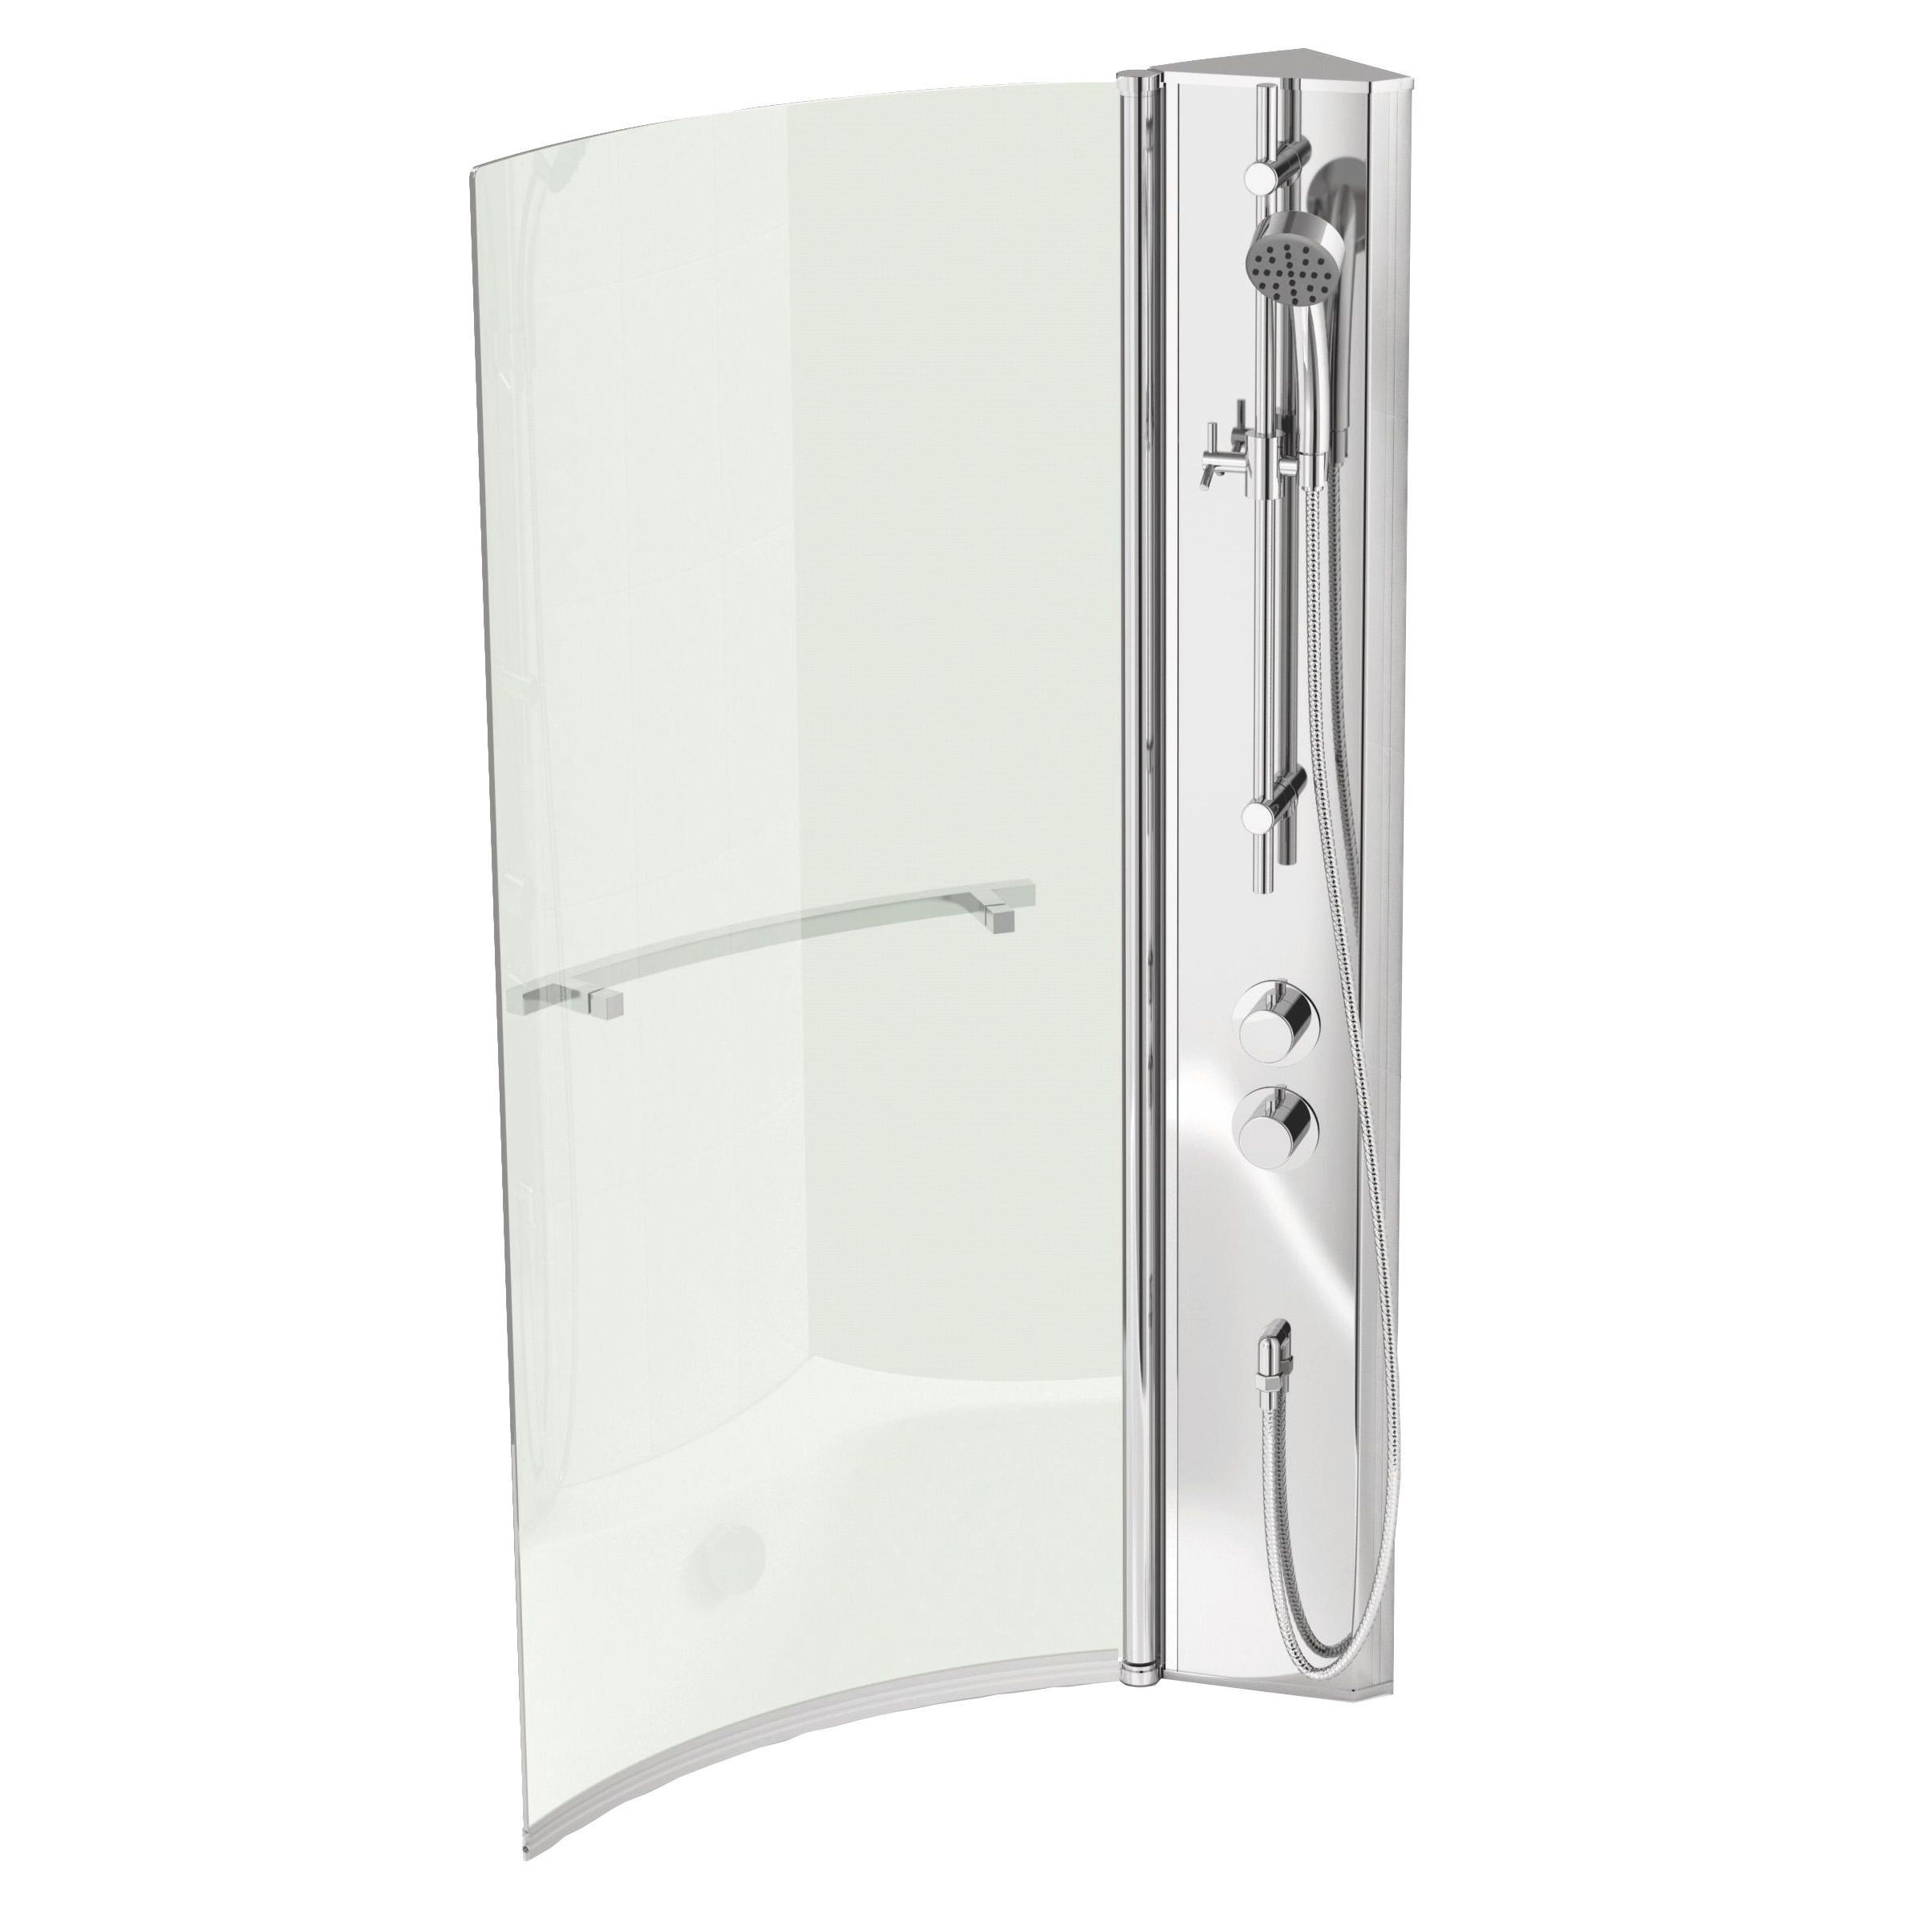 cooke lewis adelphi lh acrylic curved shower bath l 1675mm w cooke lewis adelphi lh shower column